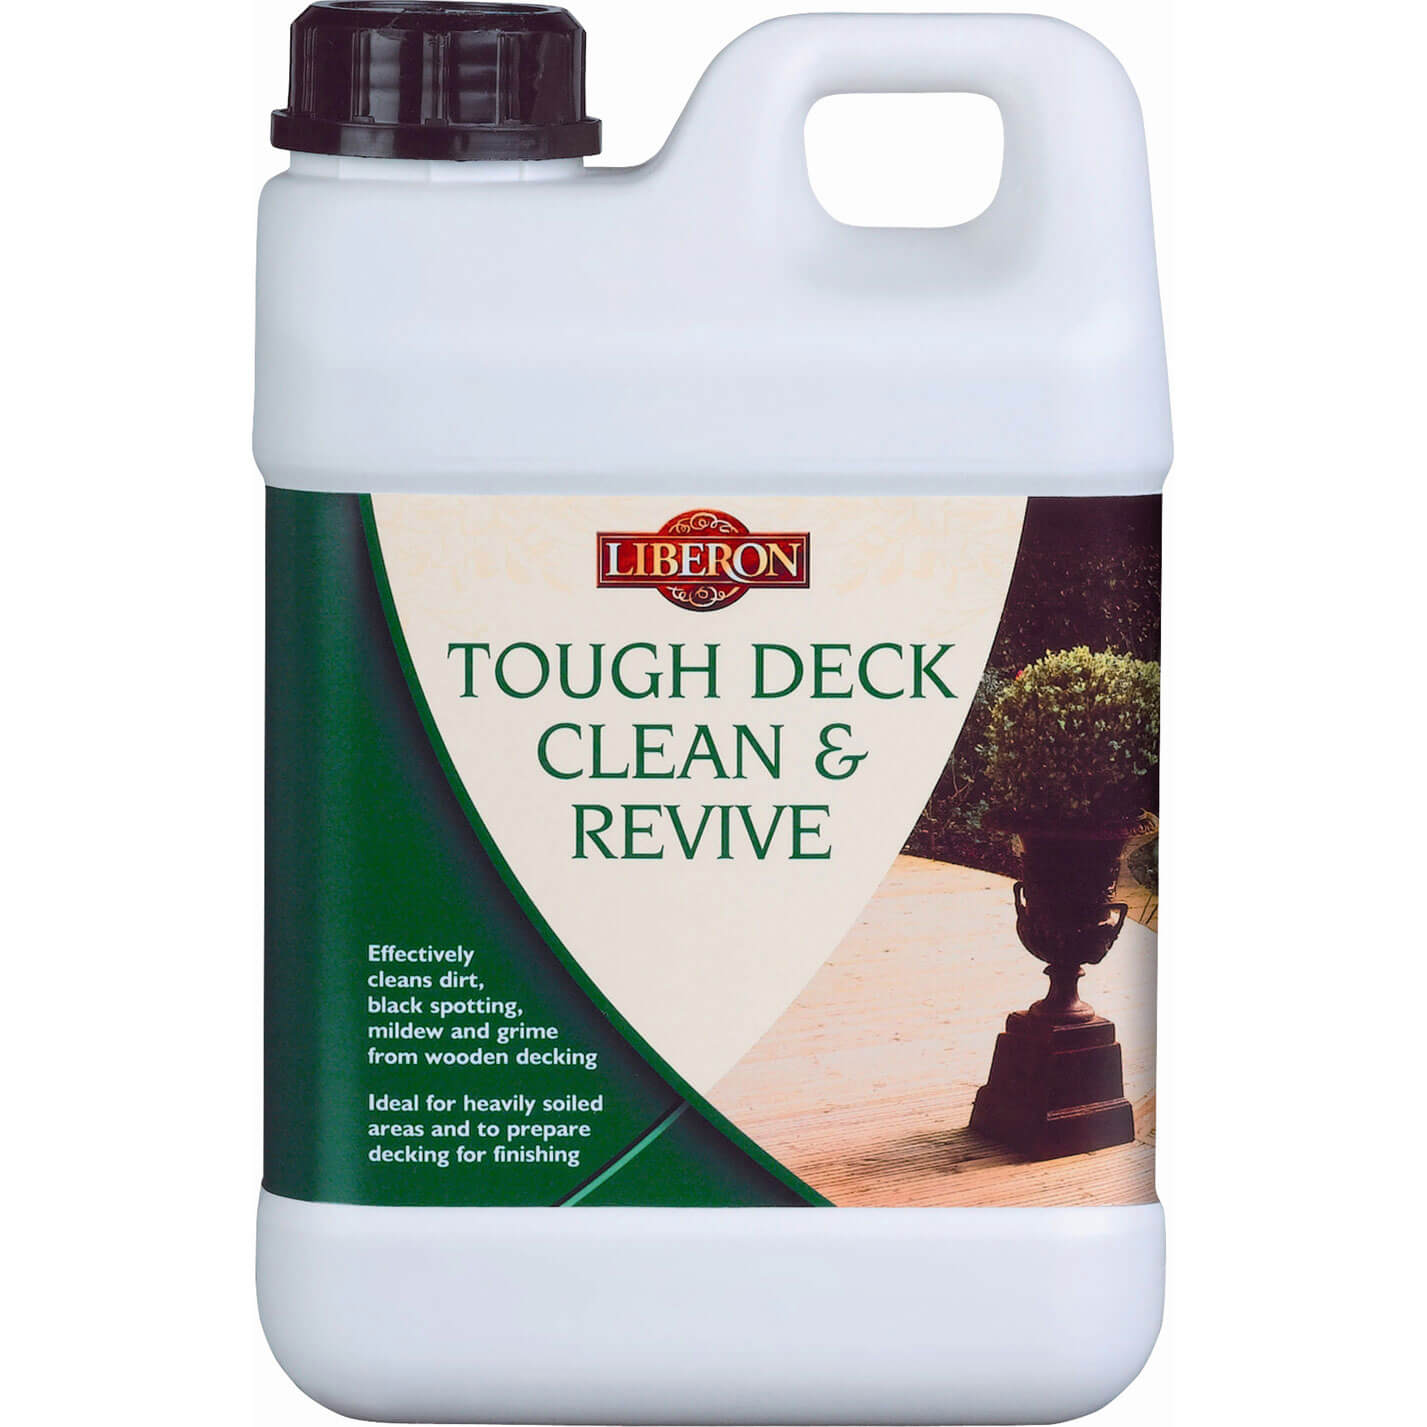 Image of Liberon Tough Deck Clean & Revive Decking Cleaner 2l